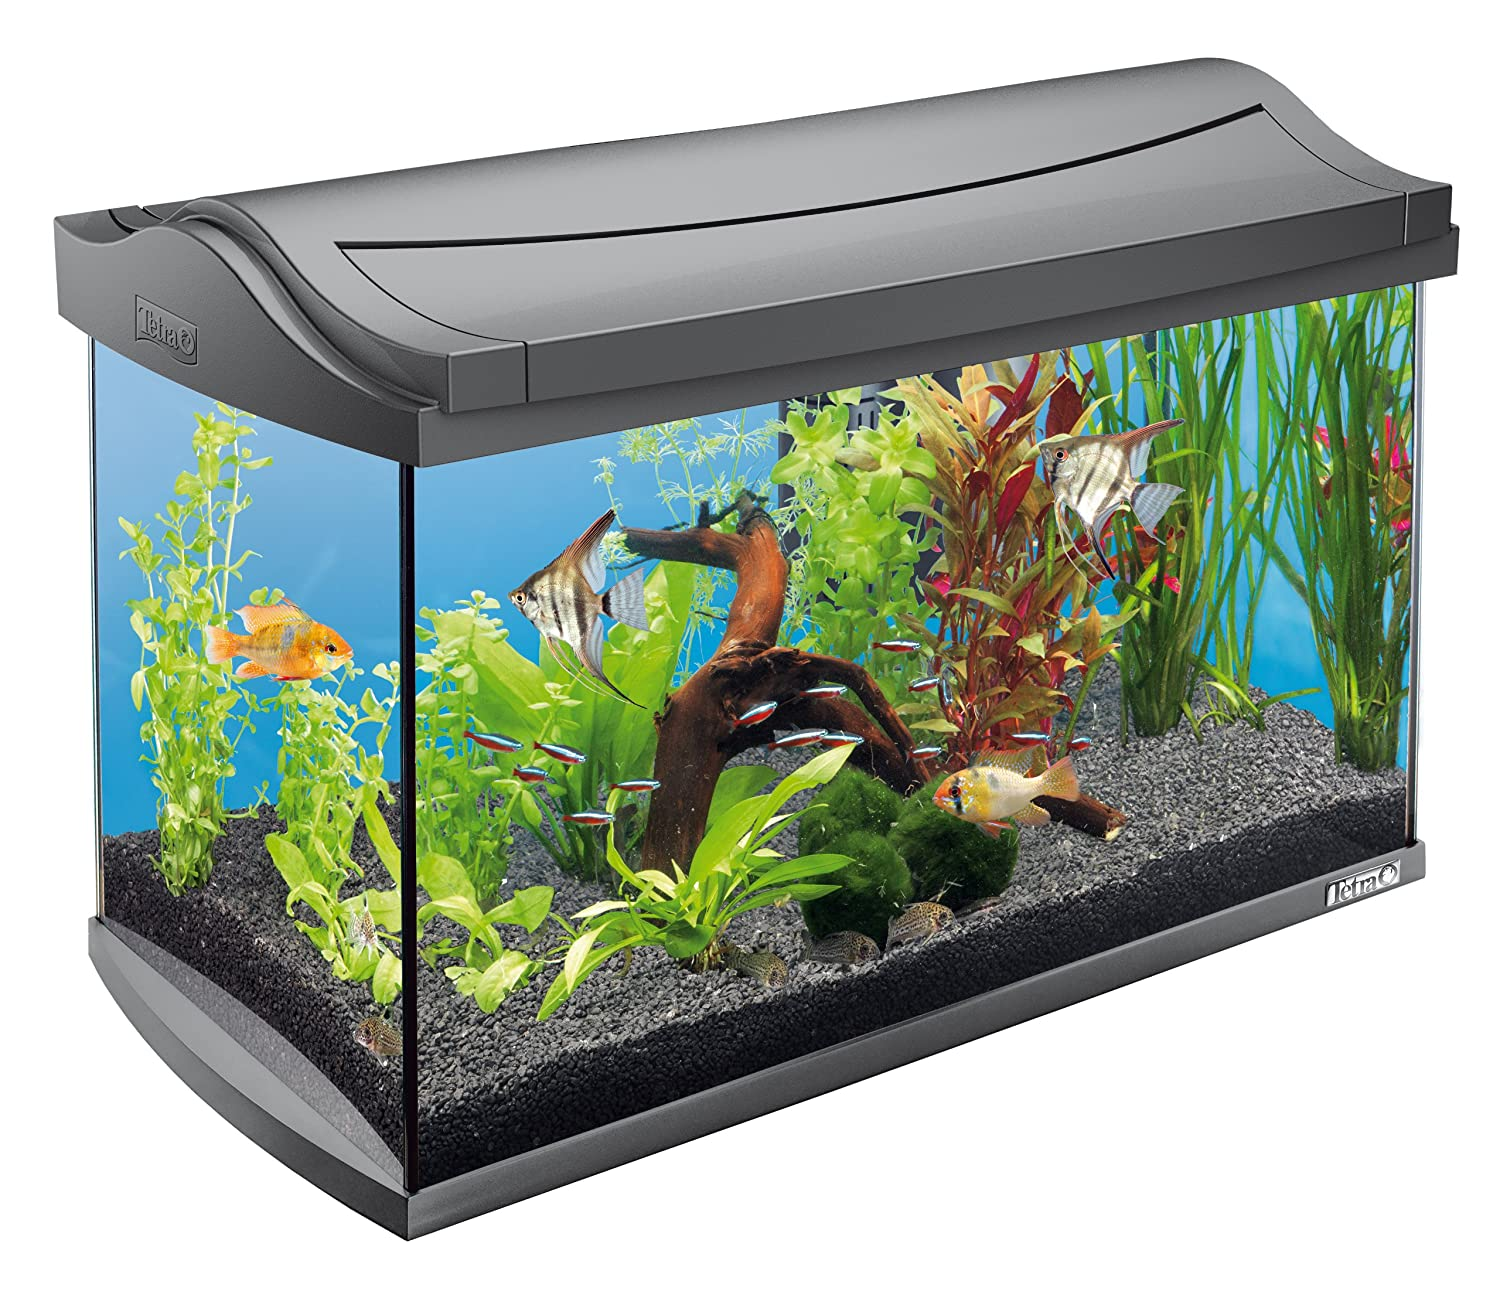 tetra aquaart fish tank 60 litre amazon co uk pet supplies